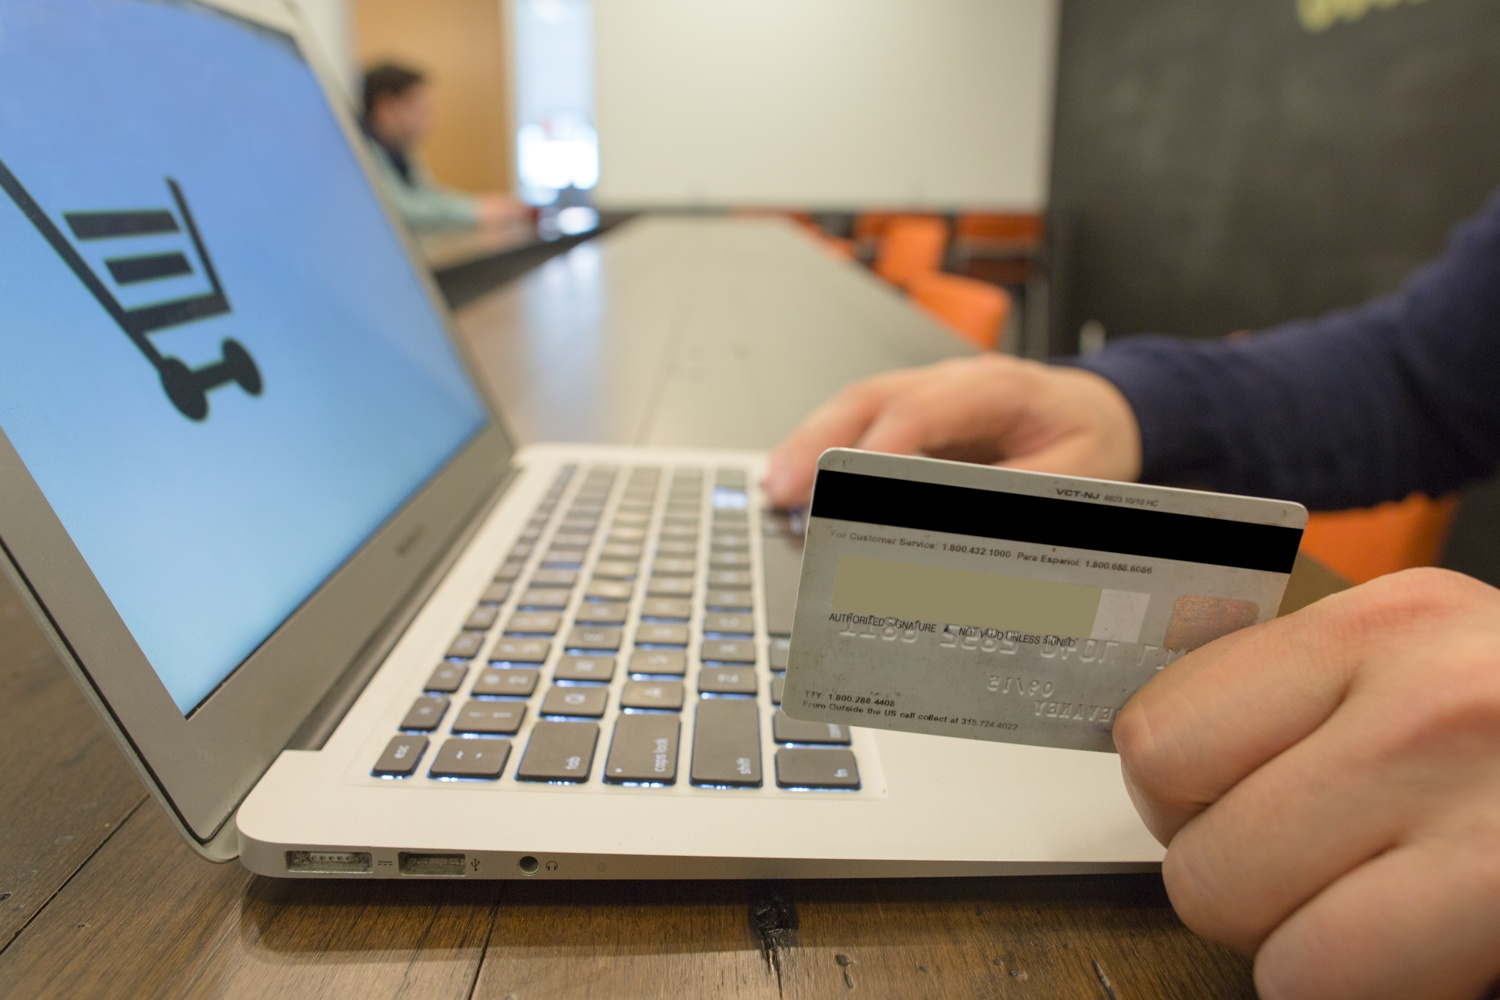 mobile-payment-2.jpg